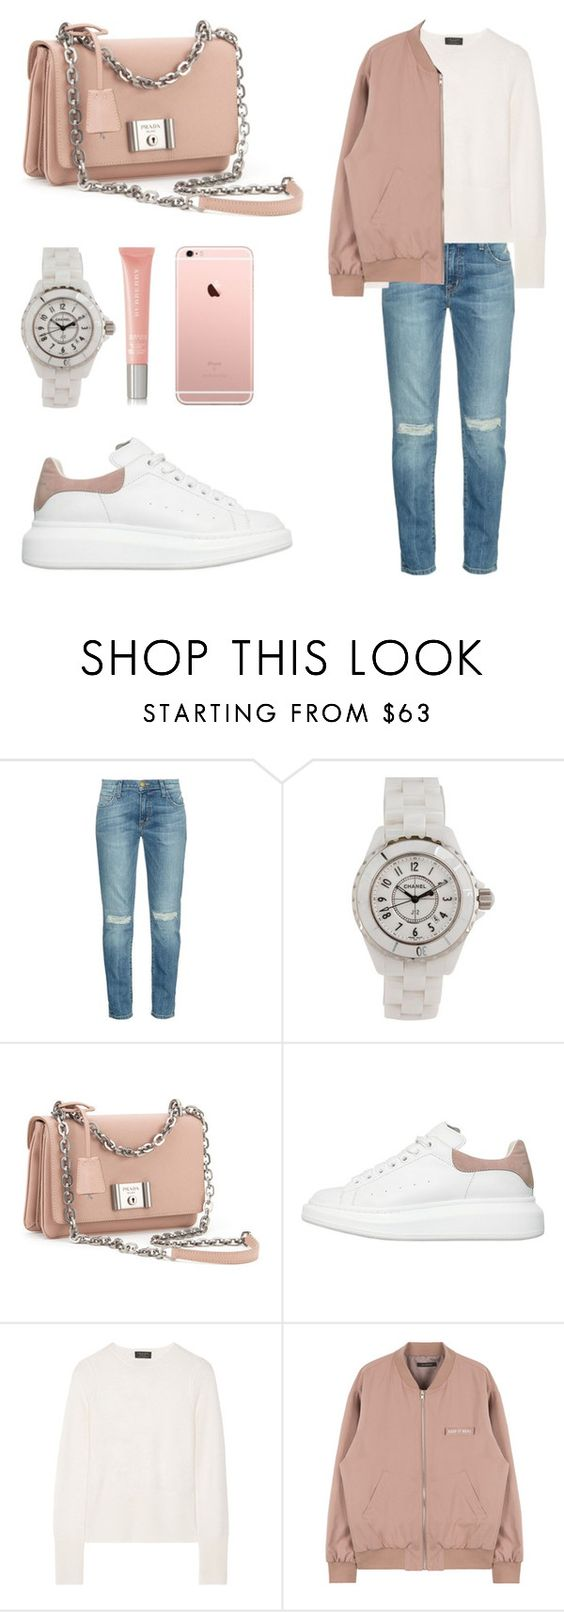 """""""Rose"""" by suzan-molchanova ❤ liked on Polyvore featuring Current/Elliott, Chanel, Prada, Alexander McQueen, rag & bone, Burberry, Pink, AlexanderMcQueen and nude"""